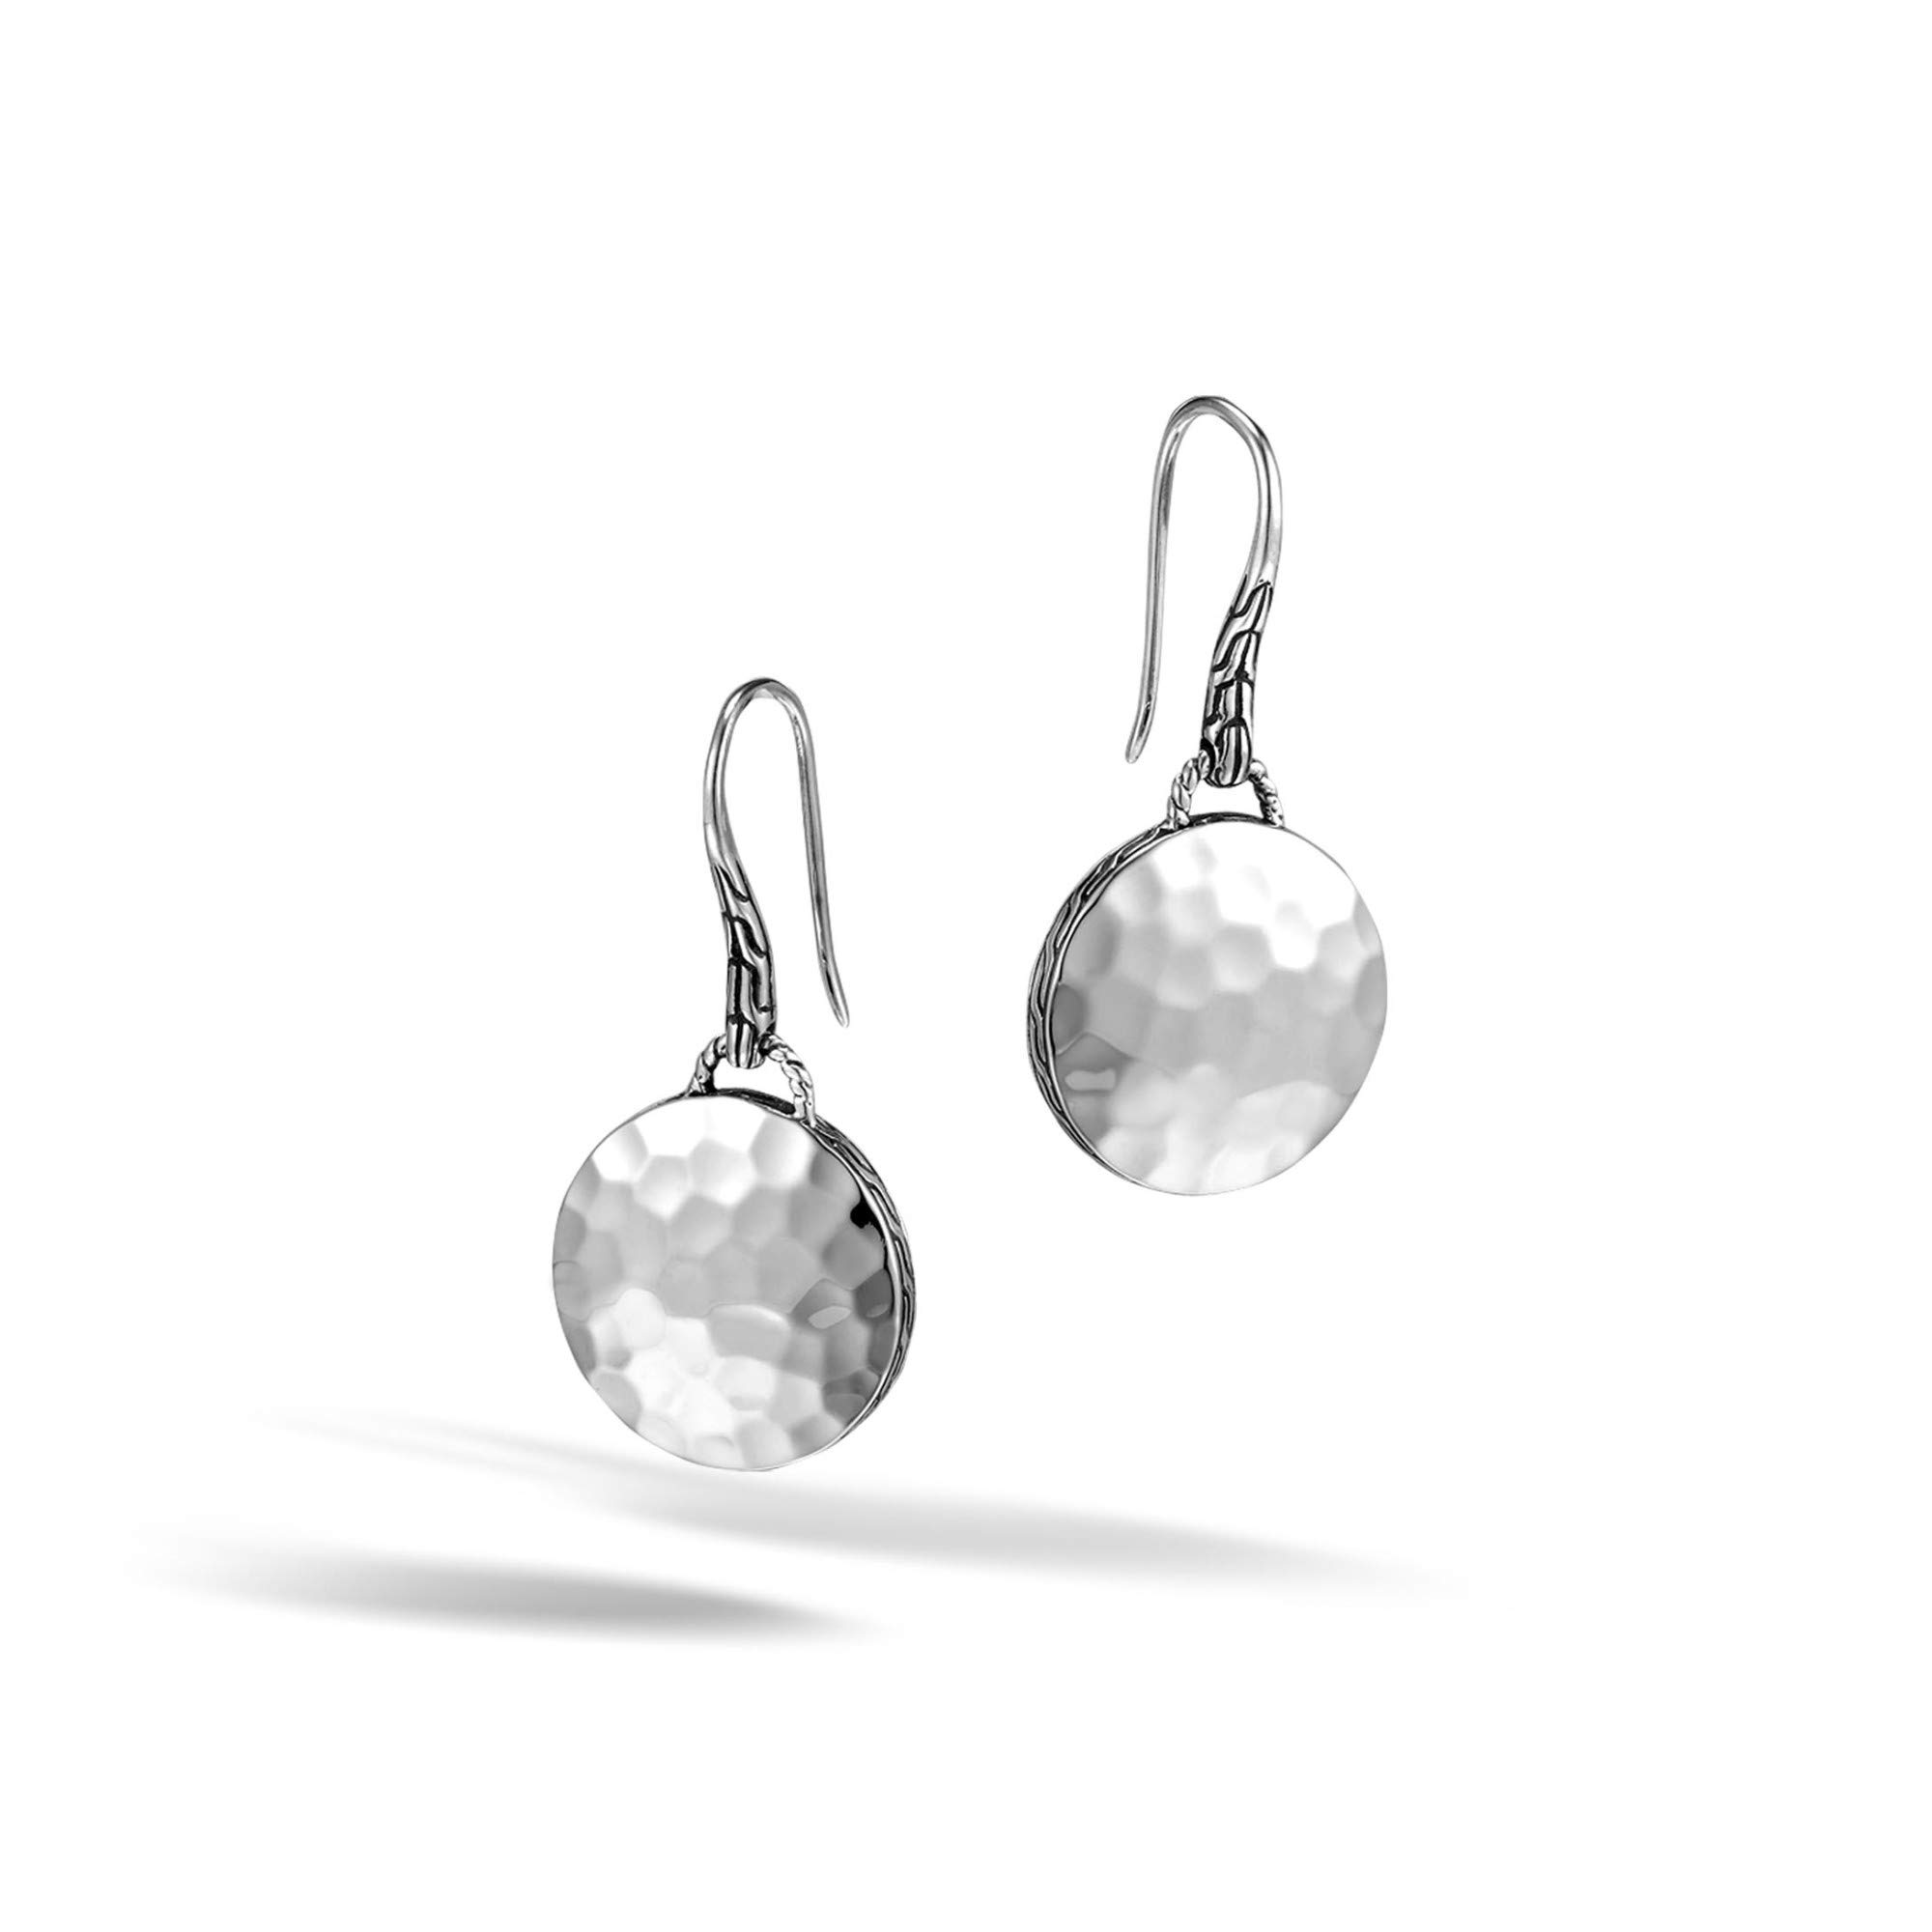 John Hardy Women's Dot Hammered Silver Round Drop Earrings on French wire (Dia 15.5mm)